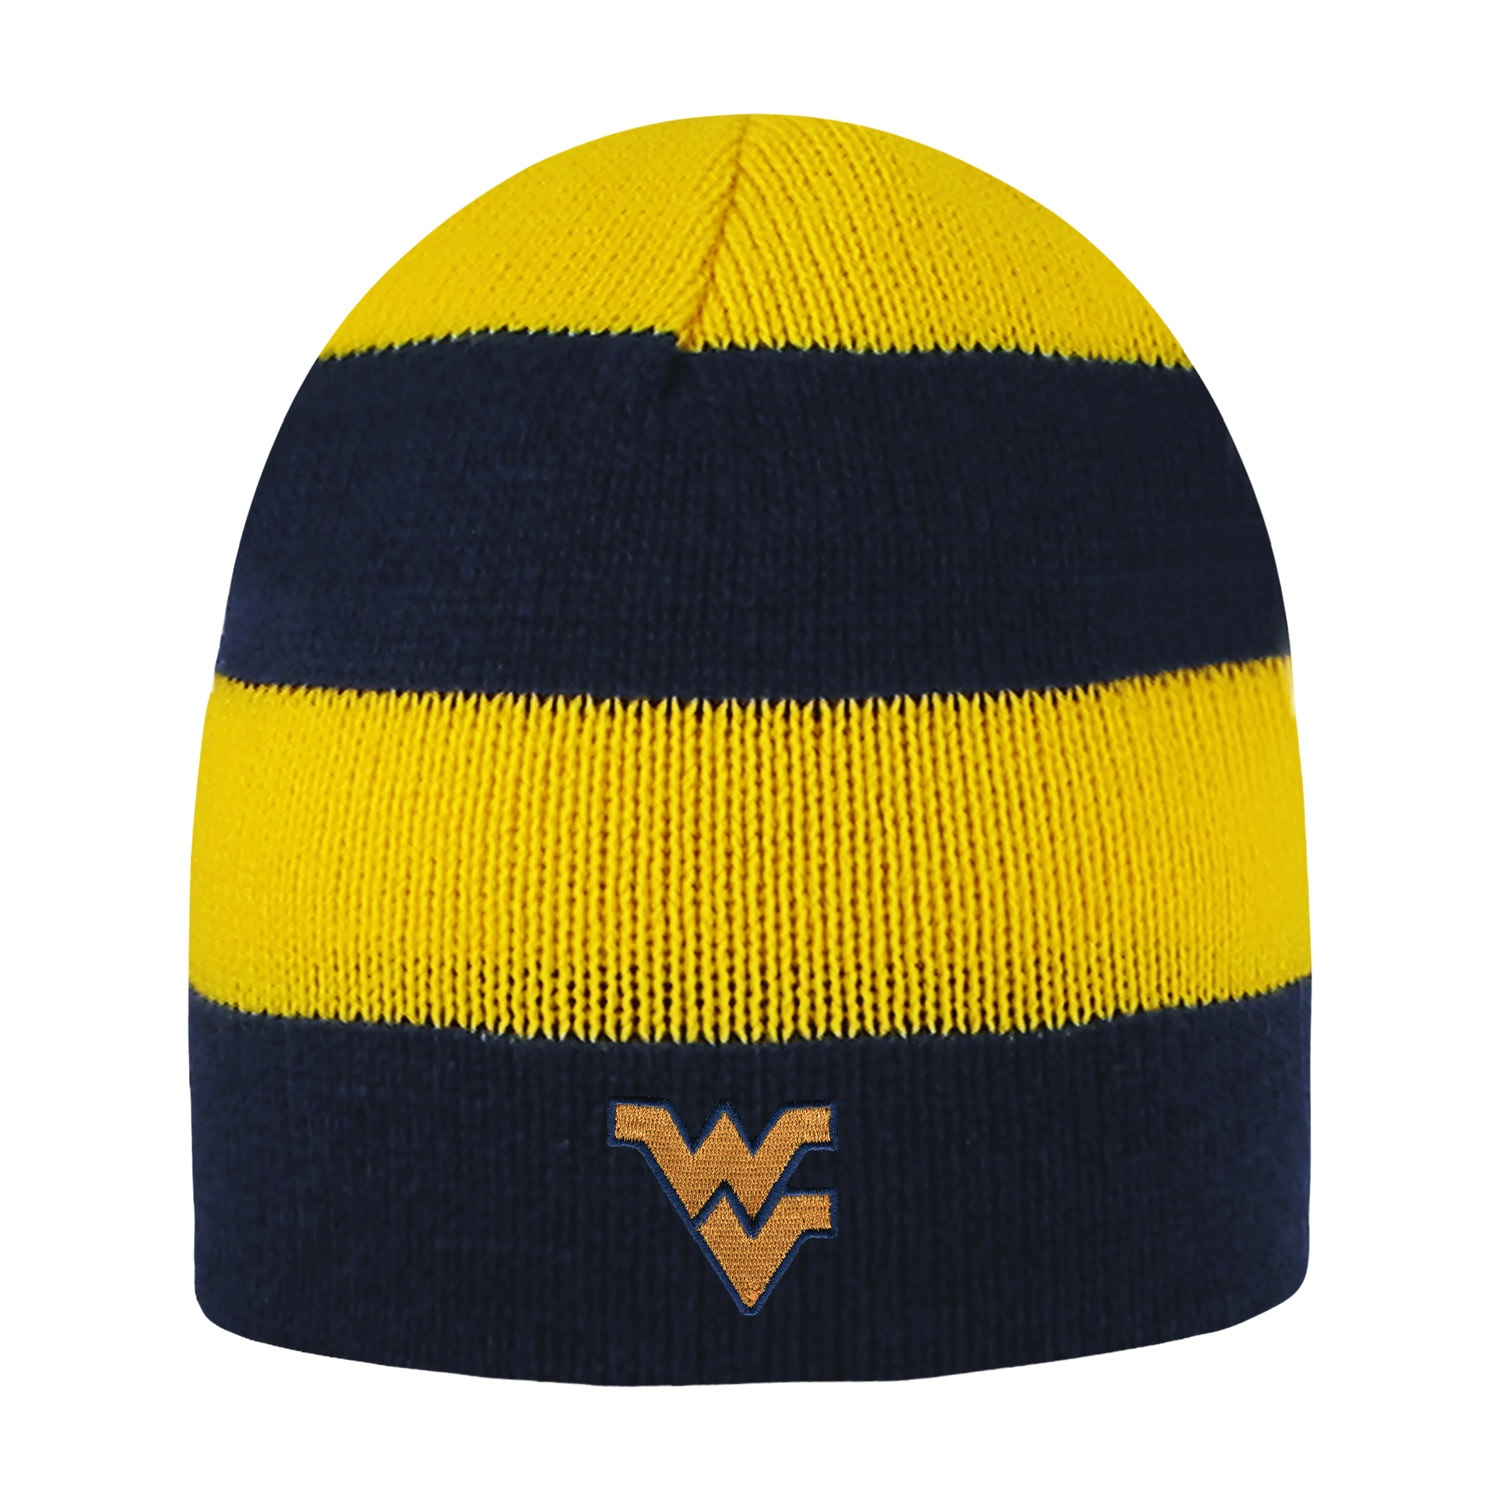 West Virginia University Rugby Striped Knit Beanie by